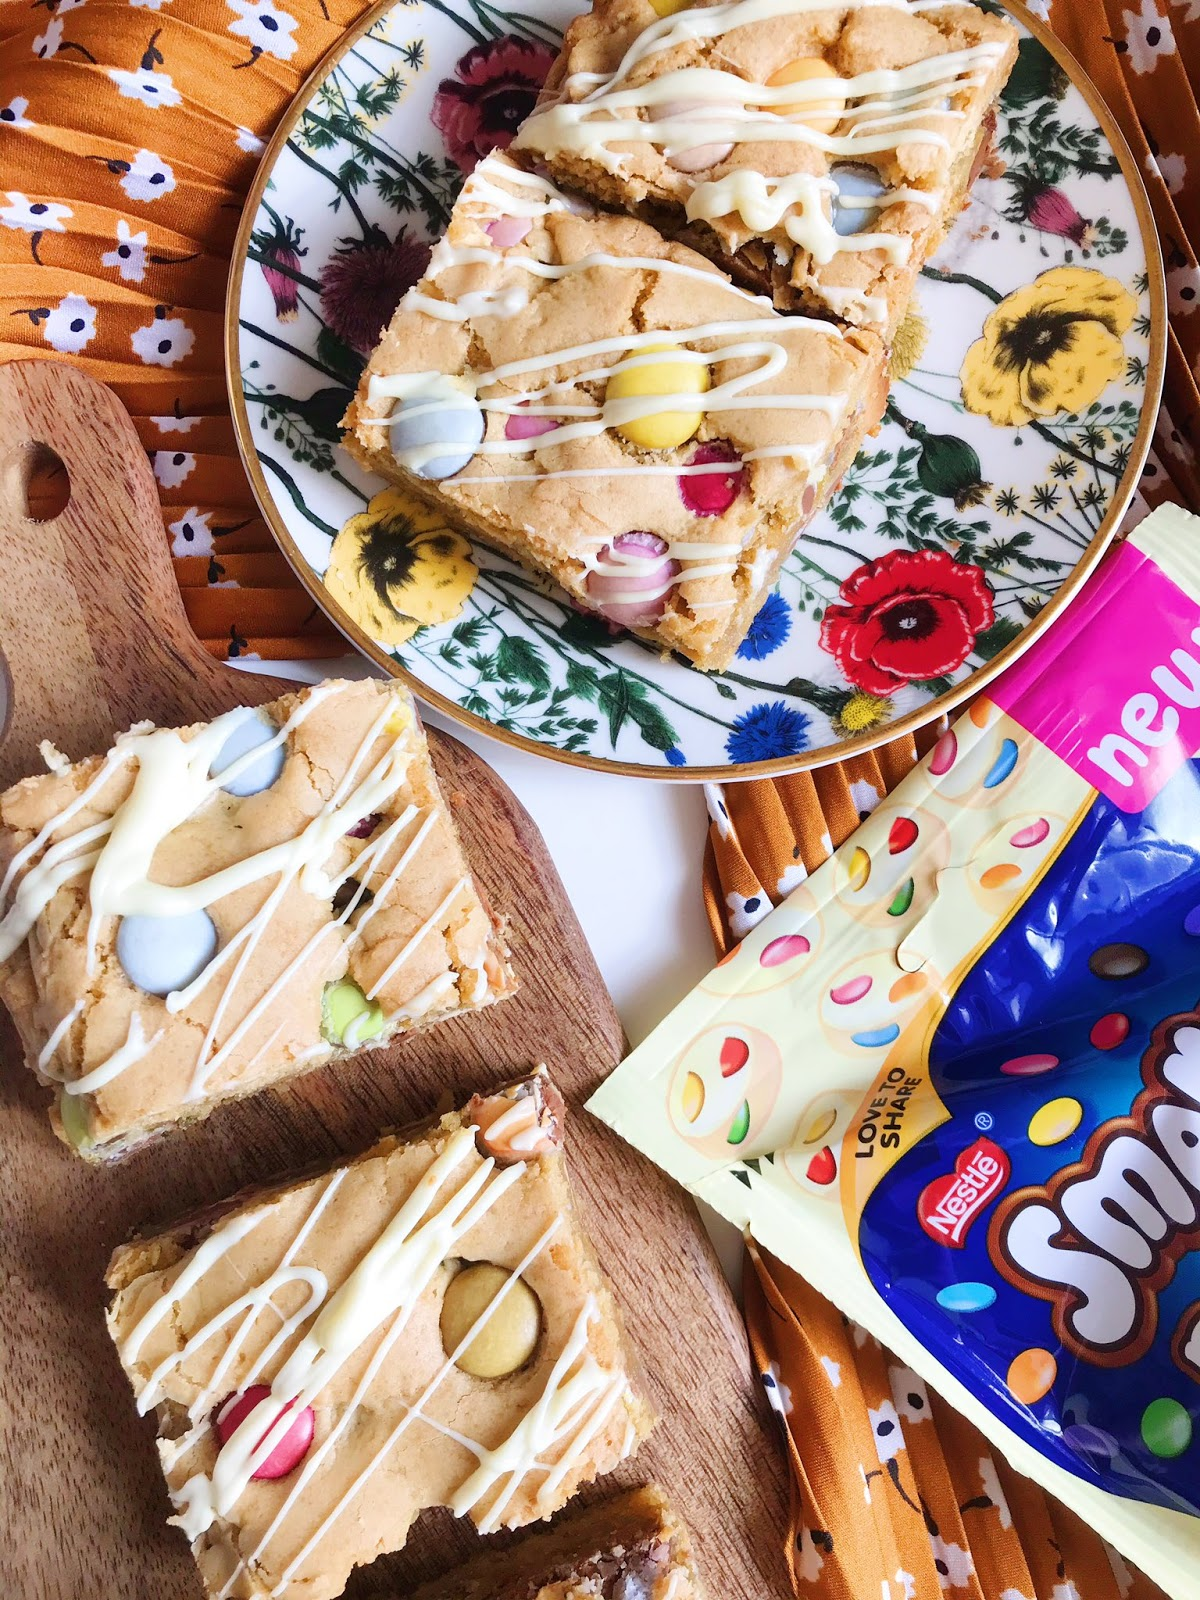 Smartie cookie slices on wooden chopping board net to flower trinket dish with cookie slice on, orange scarf as background